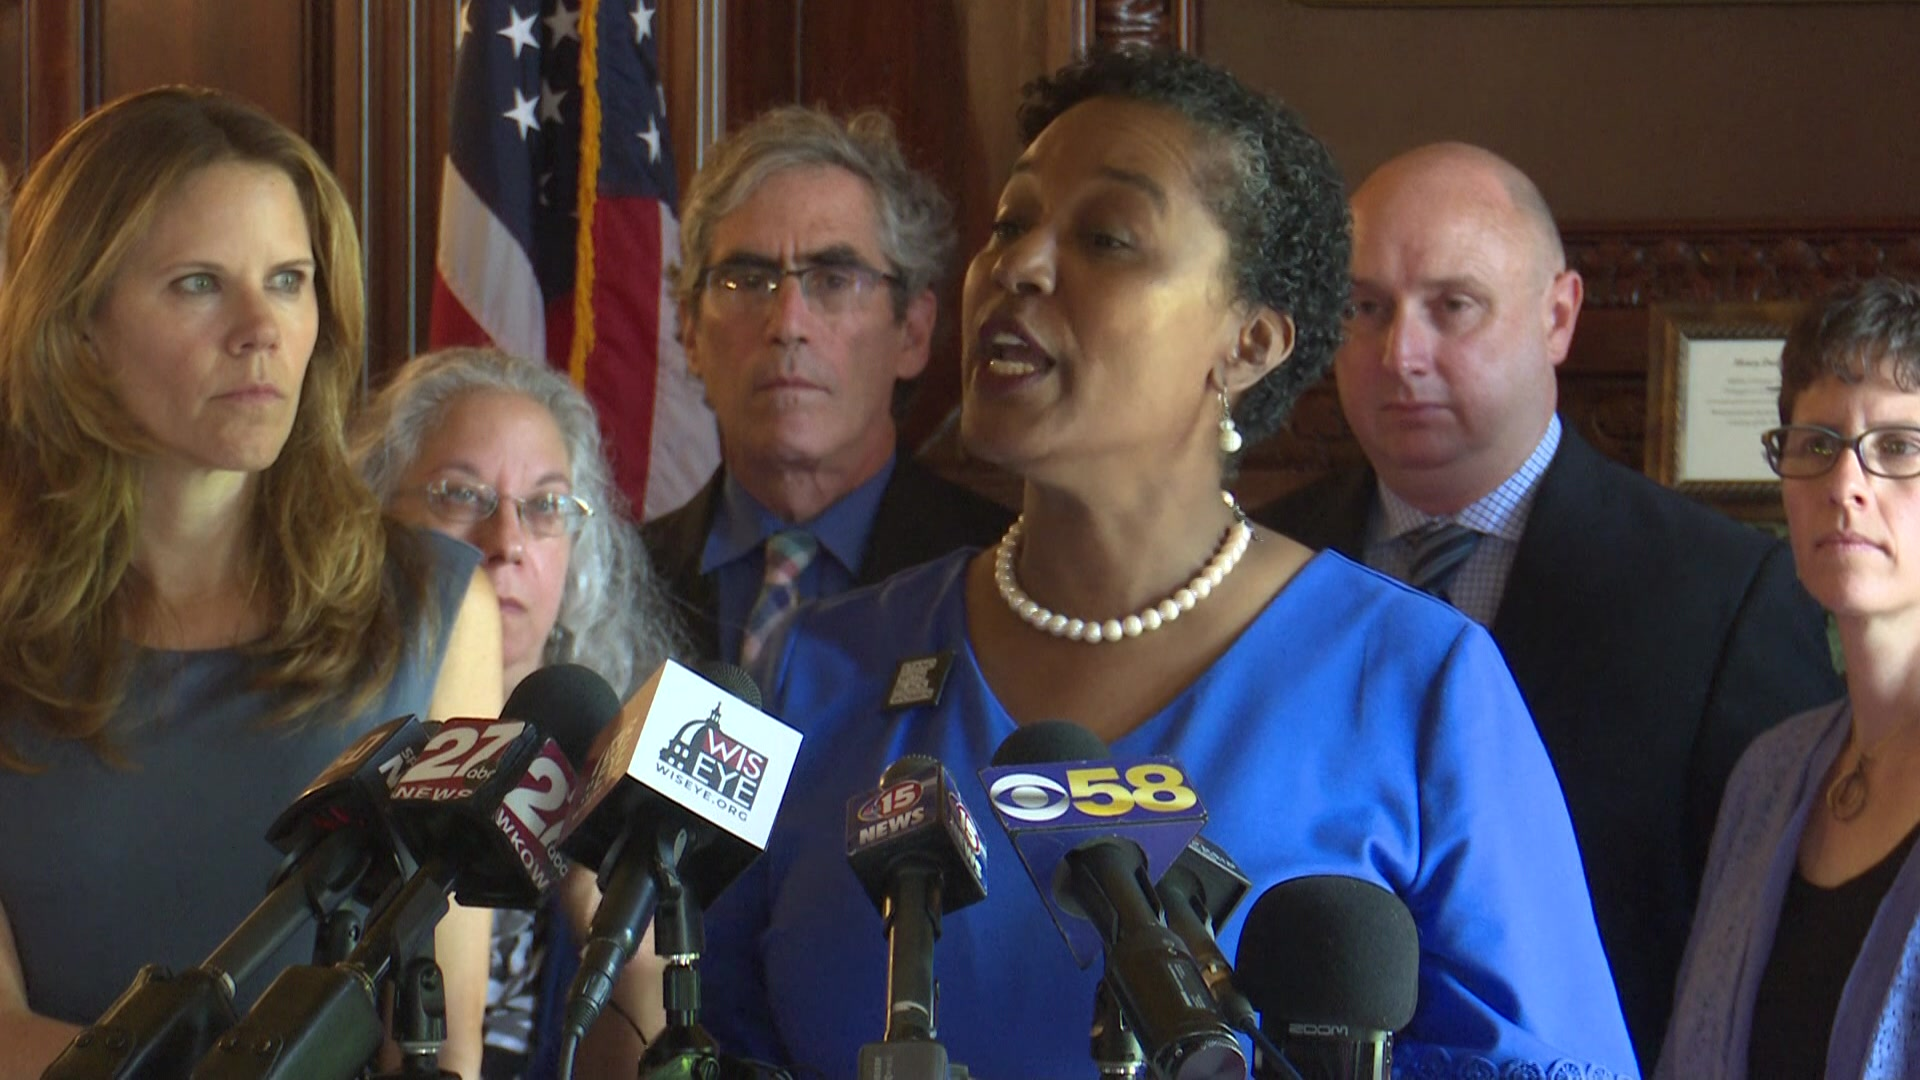 Democrats look to end lawsuit limits, force clergy reports